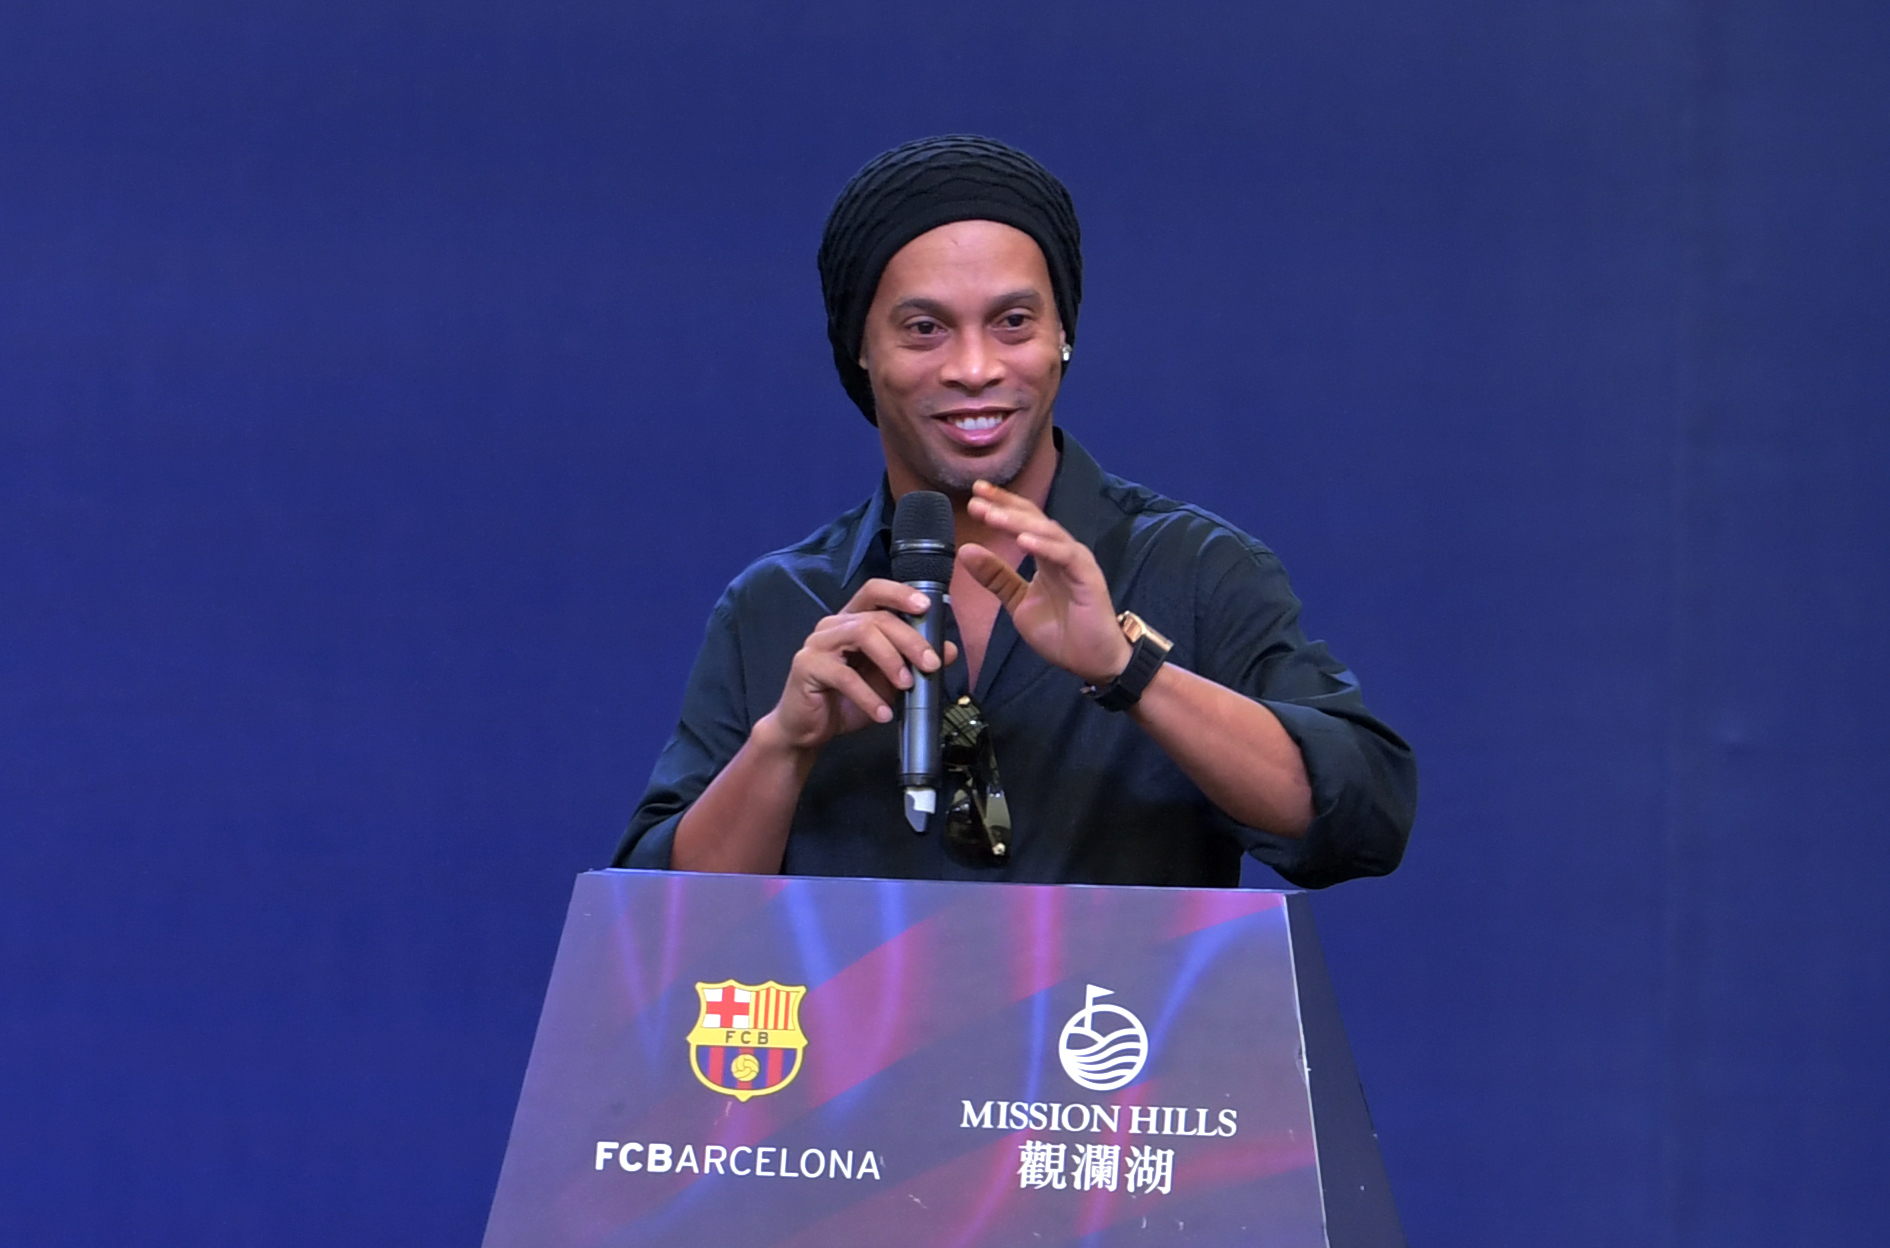 Barcelona consider how to respond to Ronaldinho's support for Jair Bolsonaro